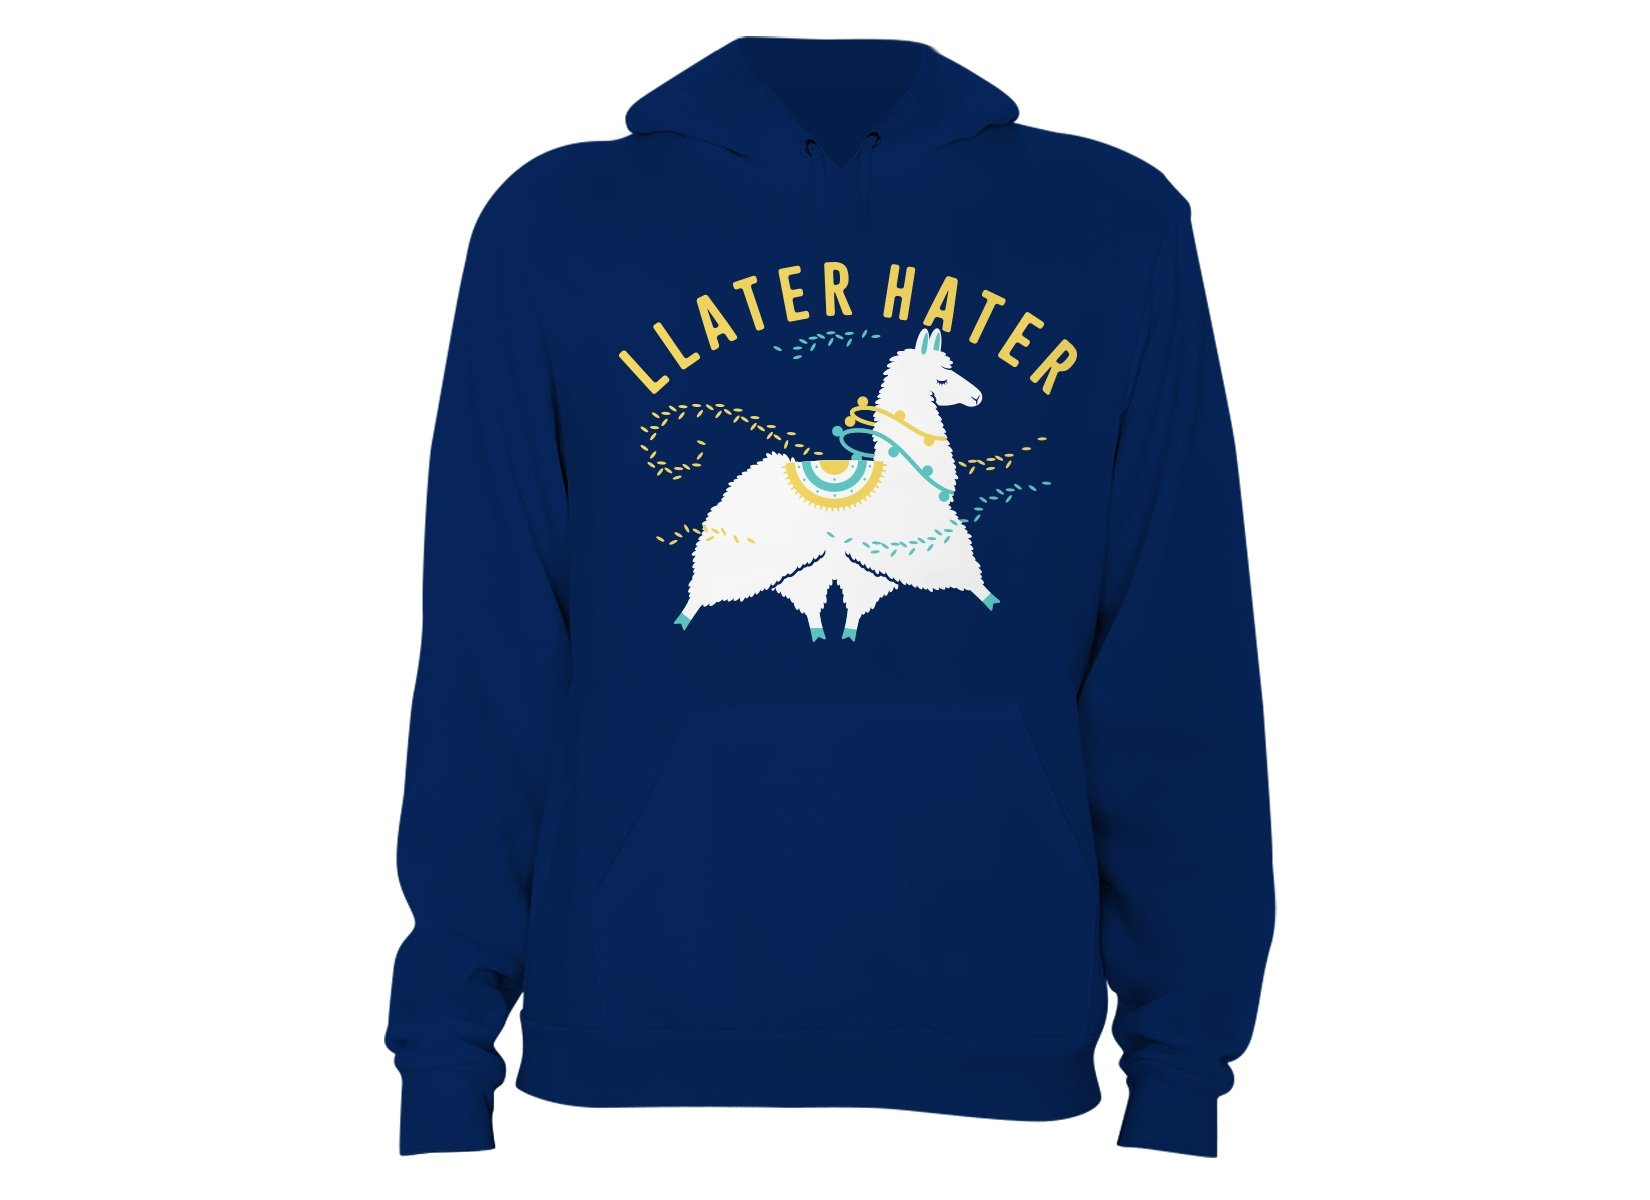 Llater Hater on Hoodie